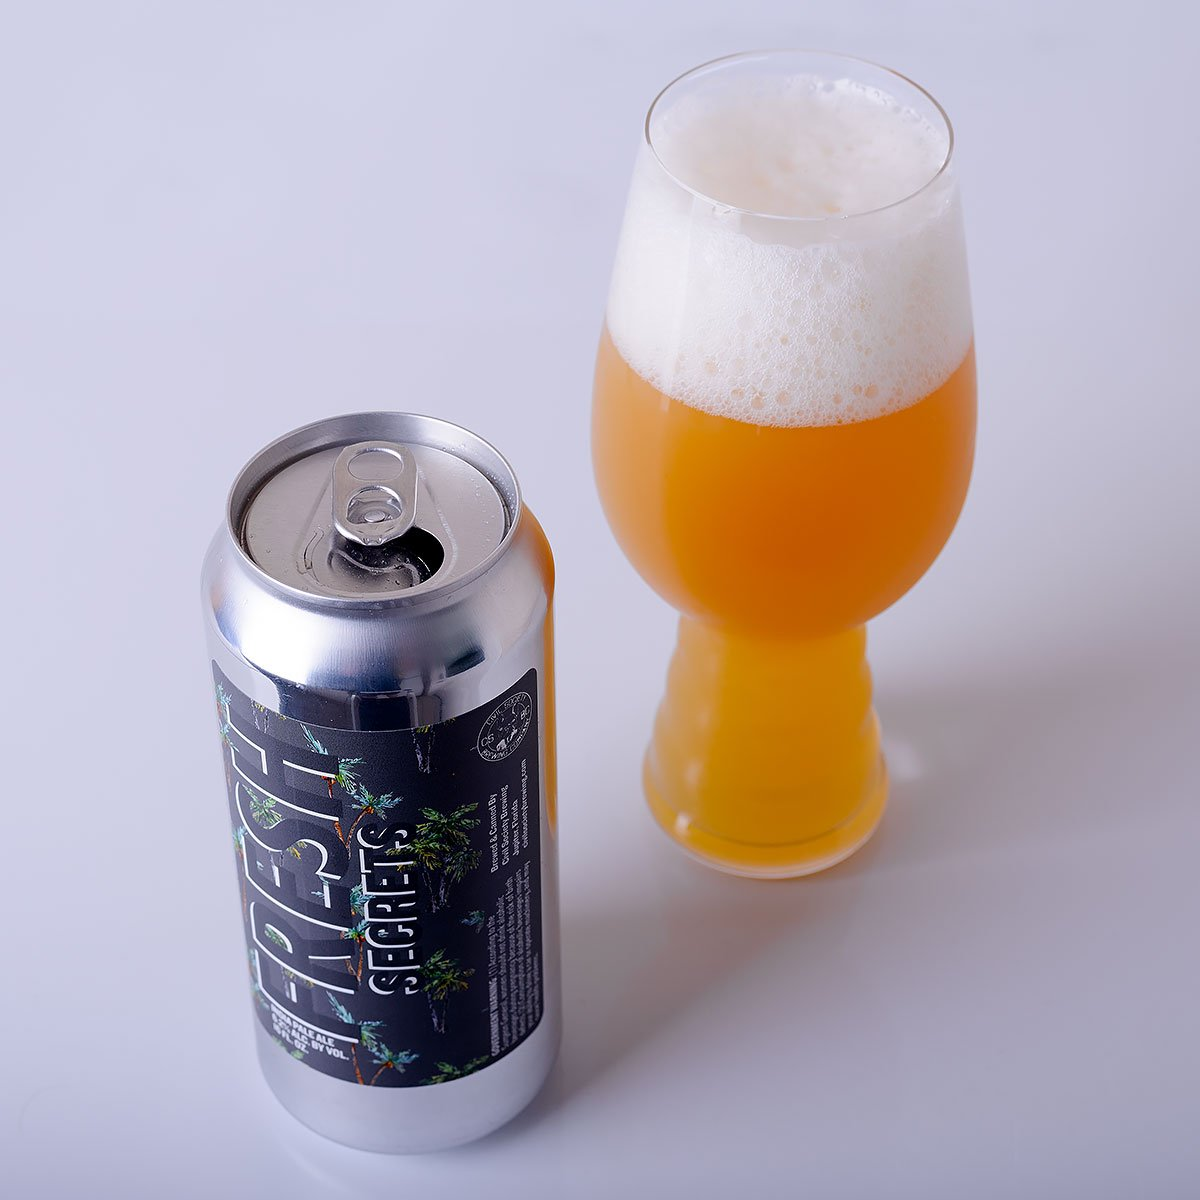 Fresh Secrets, a New England-style IPA by Civil Society Brewing Co.